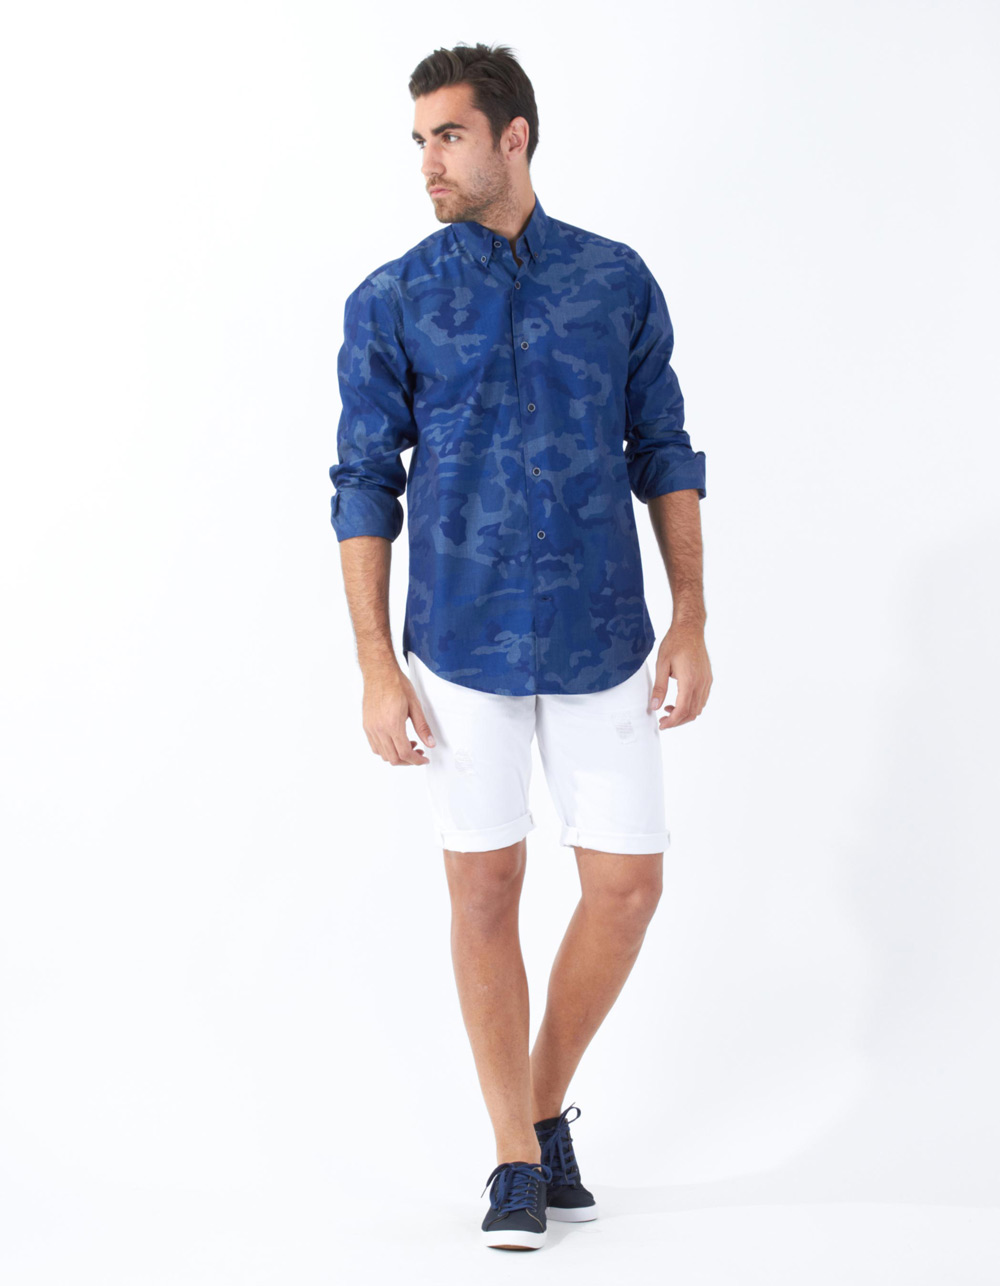 Navy blue camouflage shirt